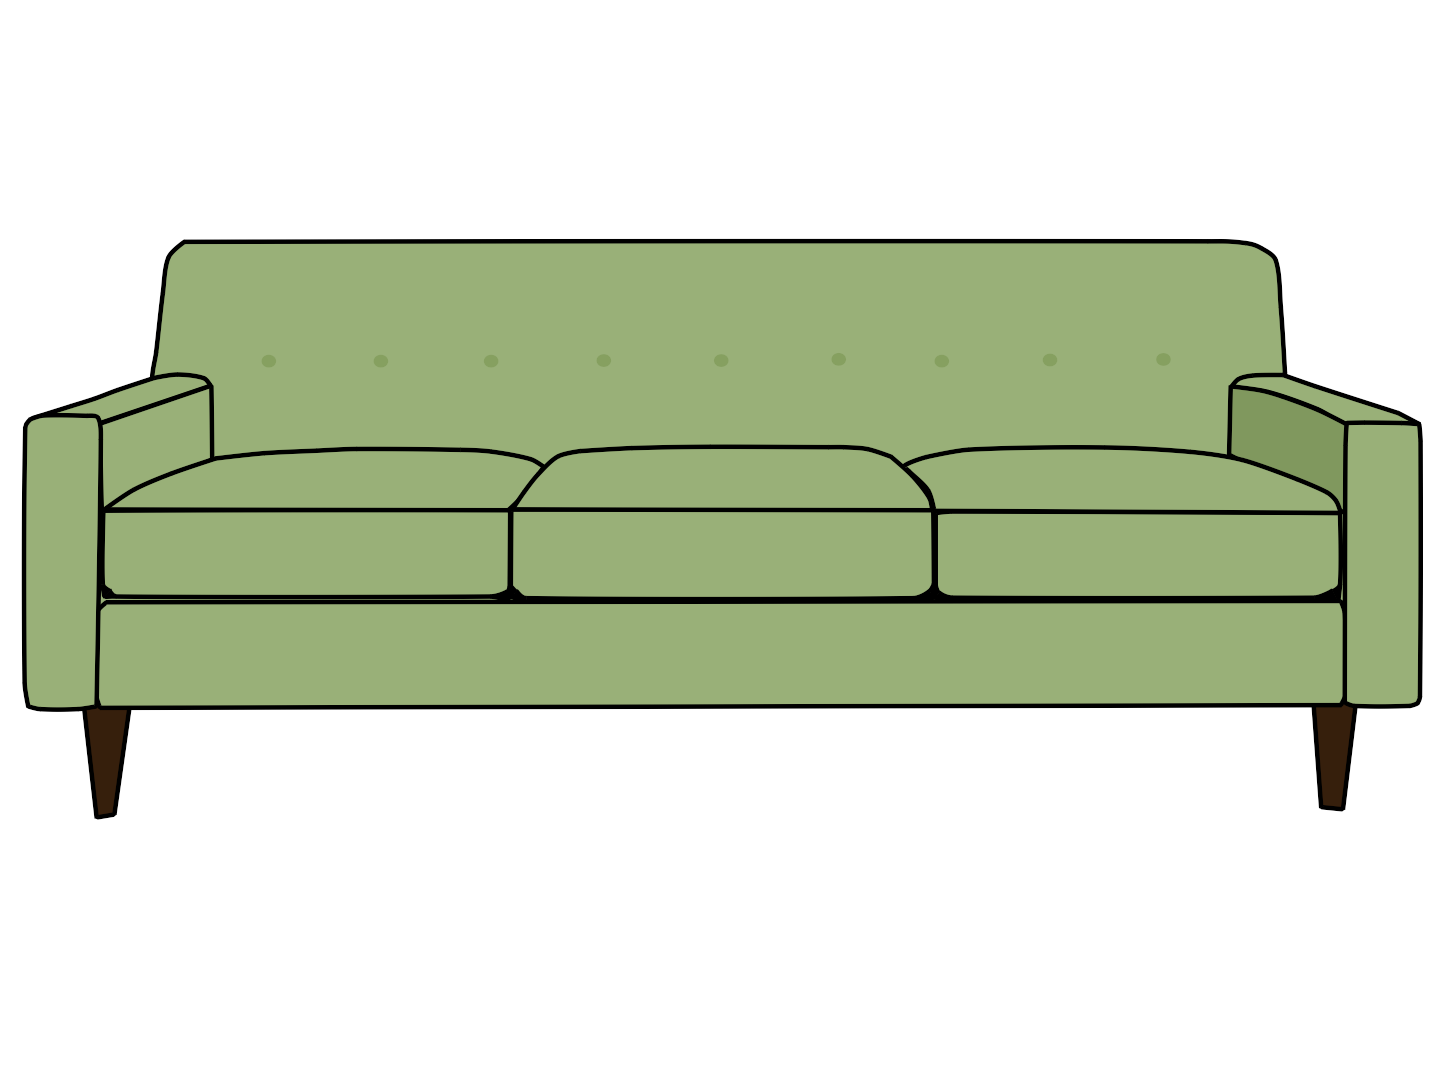 collection of bed. Couch clipart top view